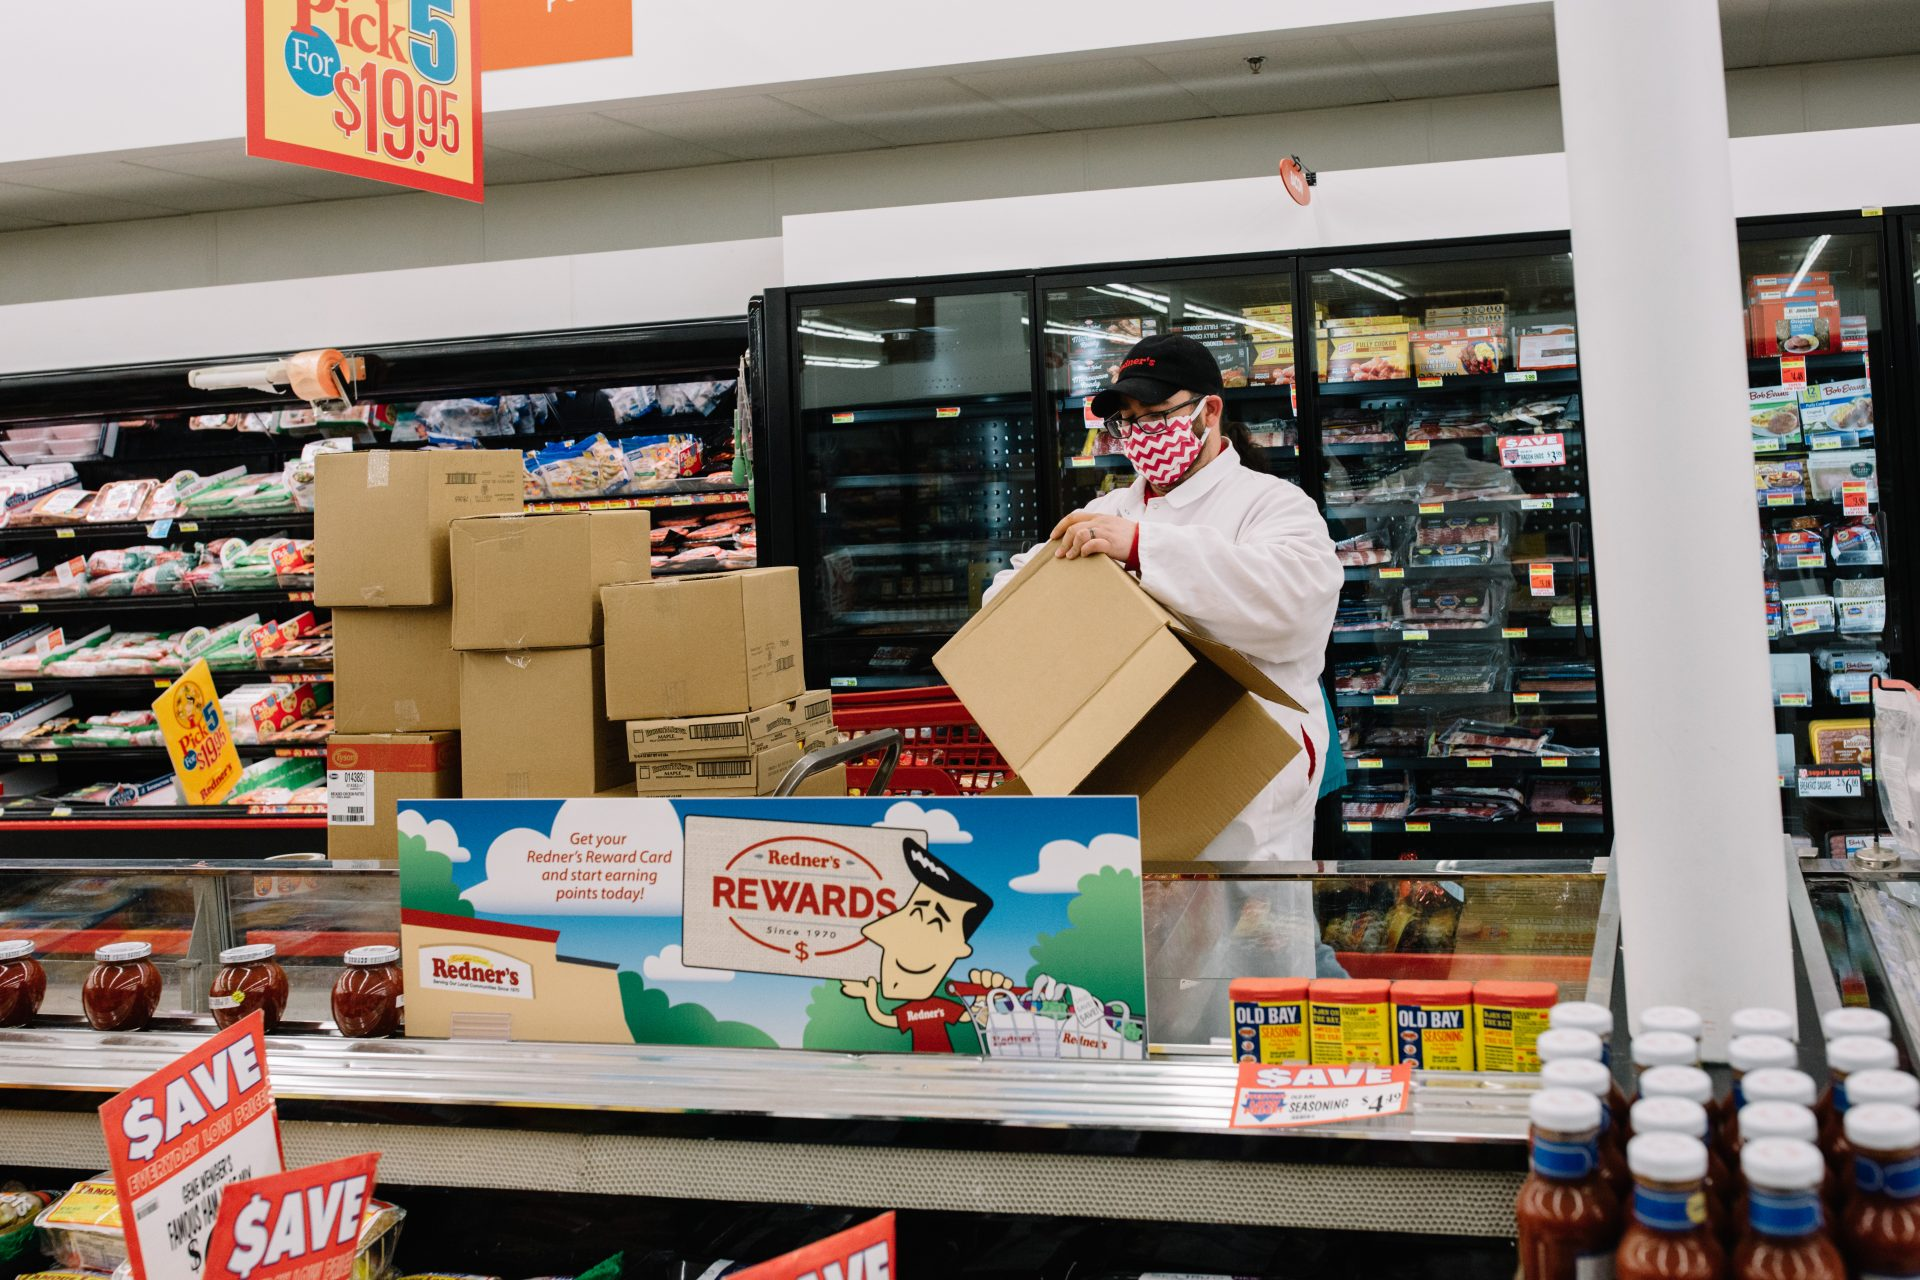 An employee unpacks boxes inside a Redner's Market.